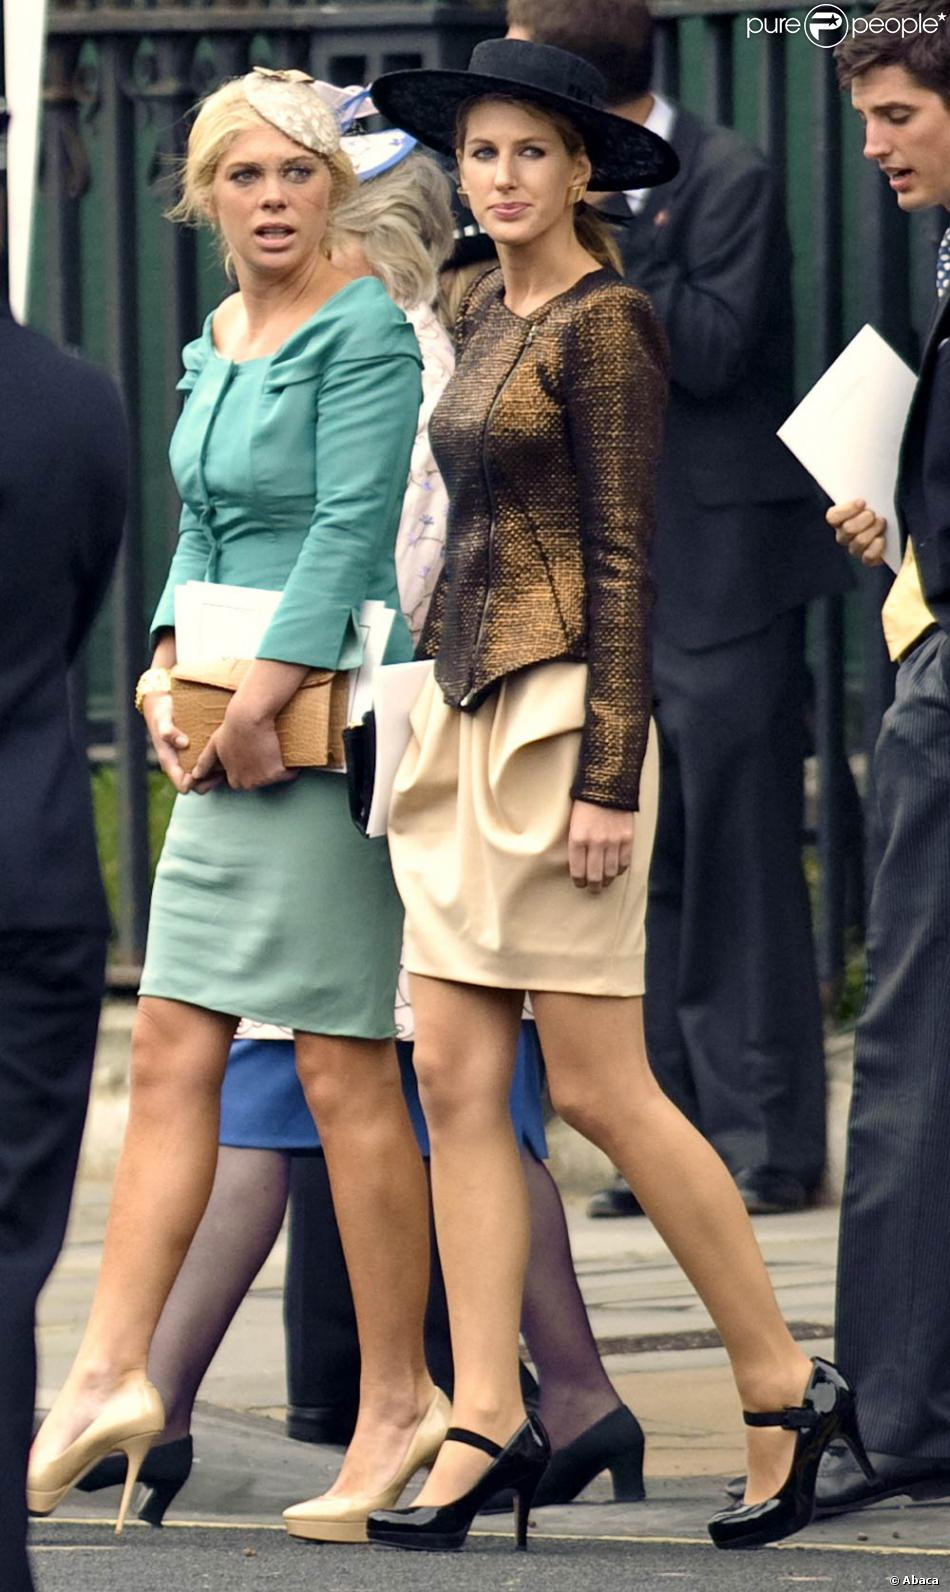 Chelsy Davy au mariage du prince William et de Catherine Middleton le 29  avril 2011.